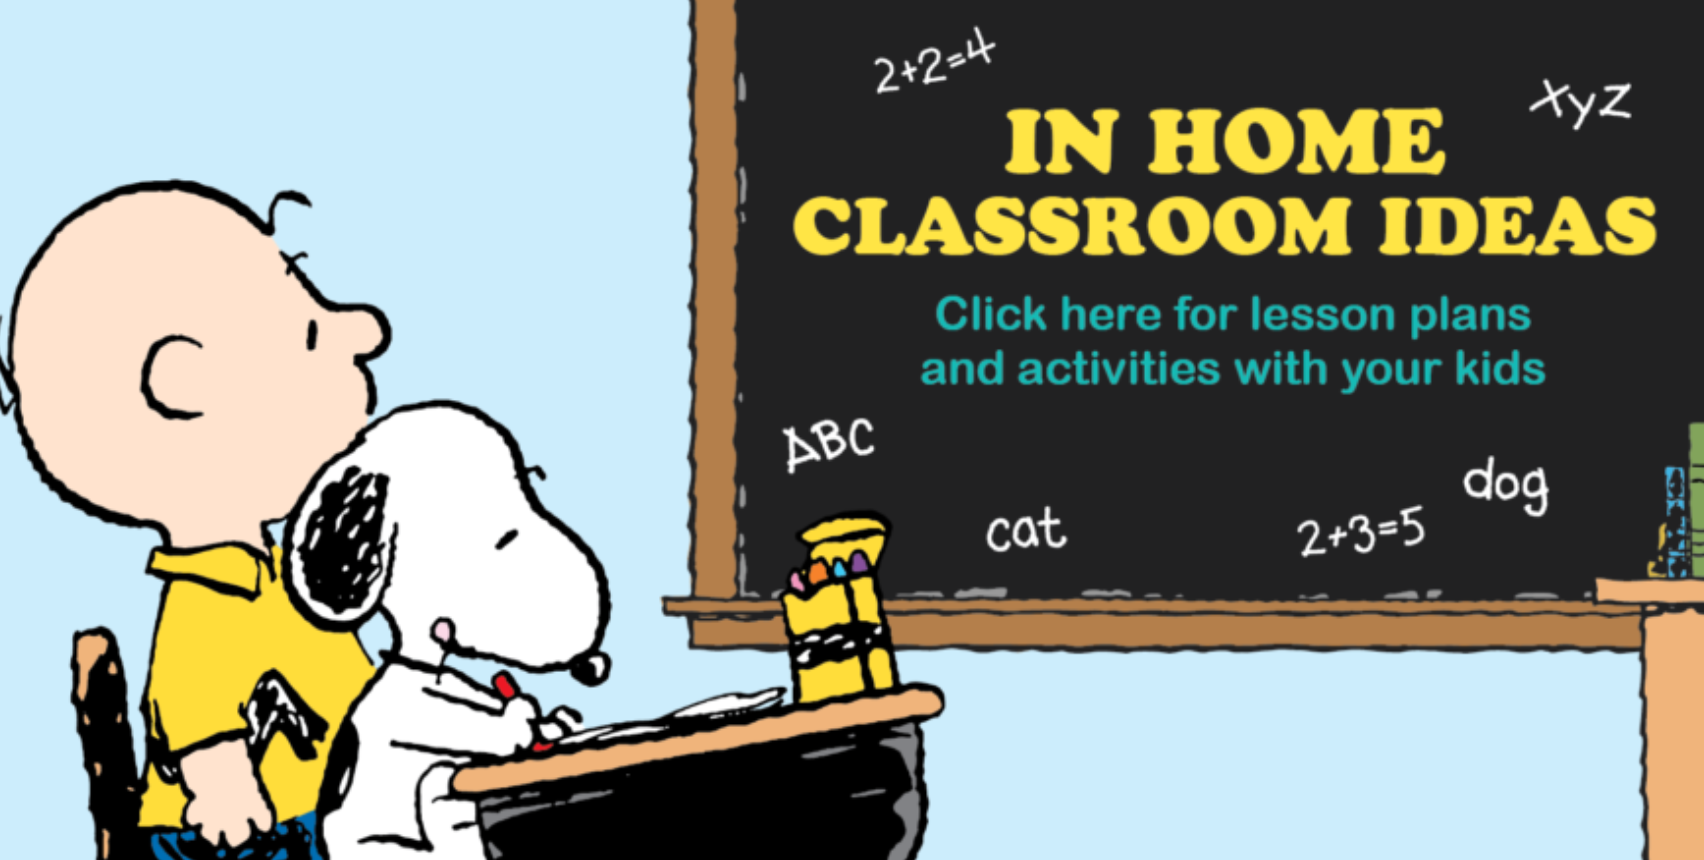 Snoopy And The Peanuts Gang Have Free Coloring Pages And Activities For Kids